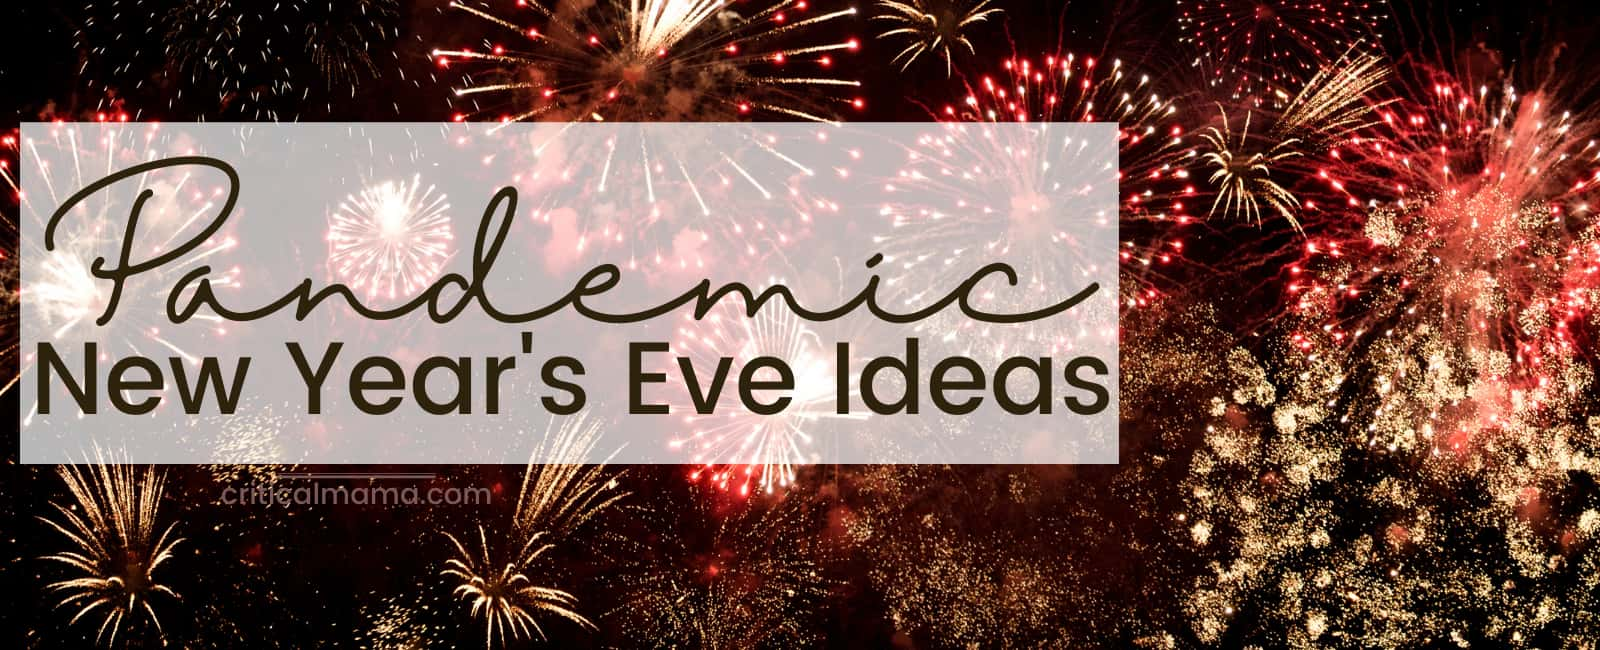 Pandemic New Year's Eve Ideas